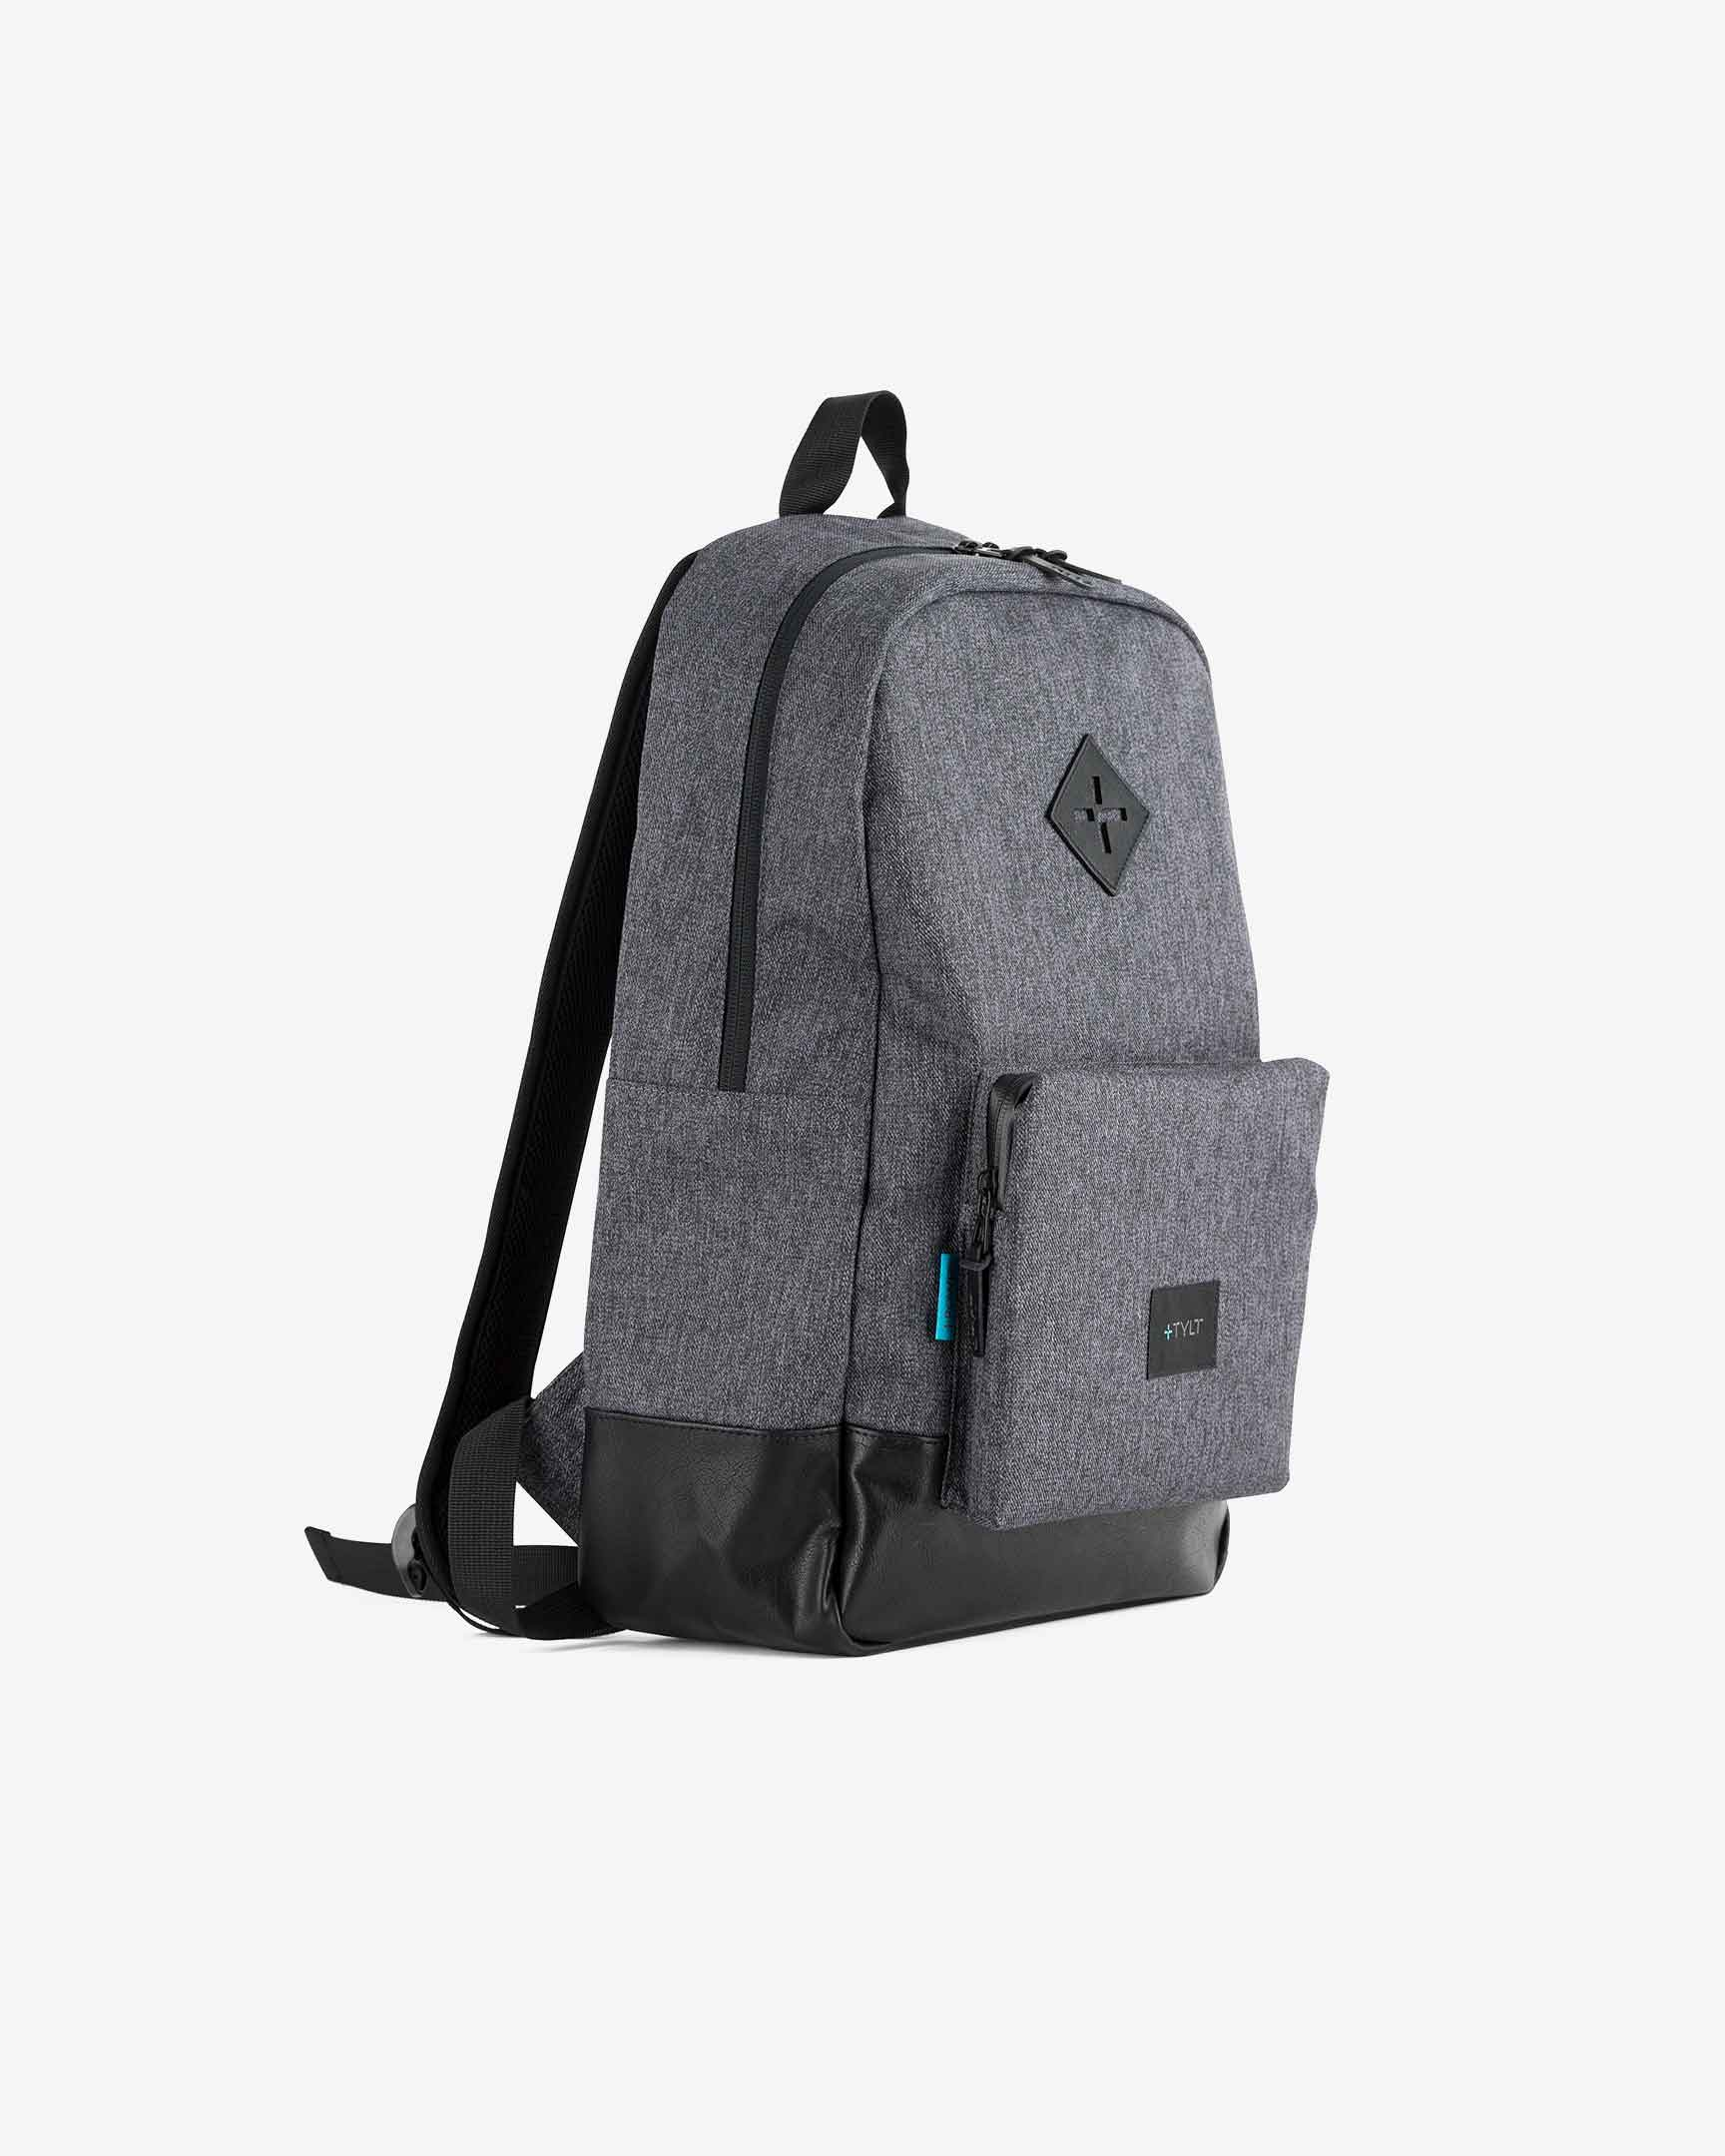 Tylt Active Power Bag side view